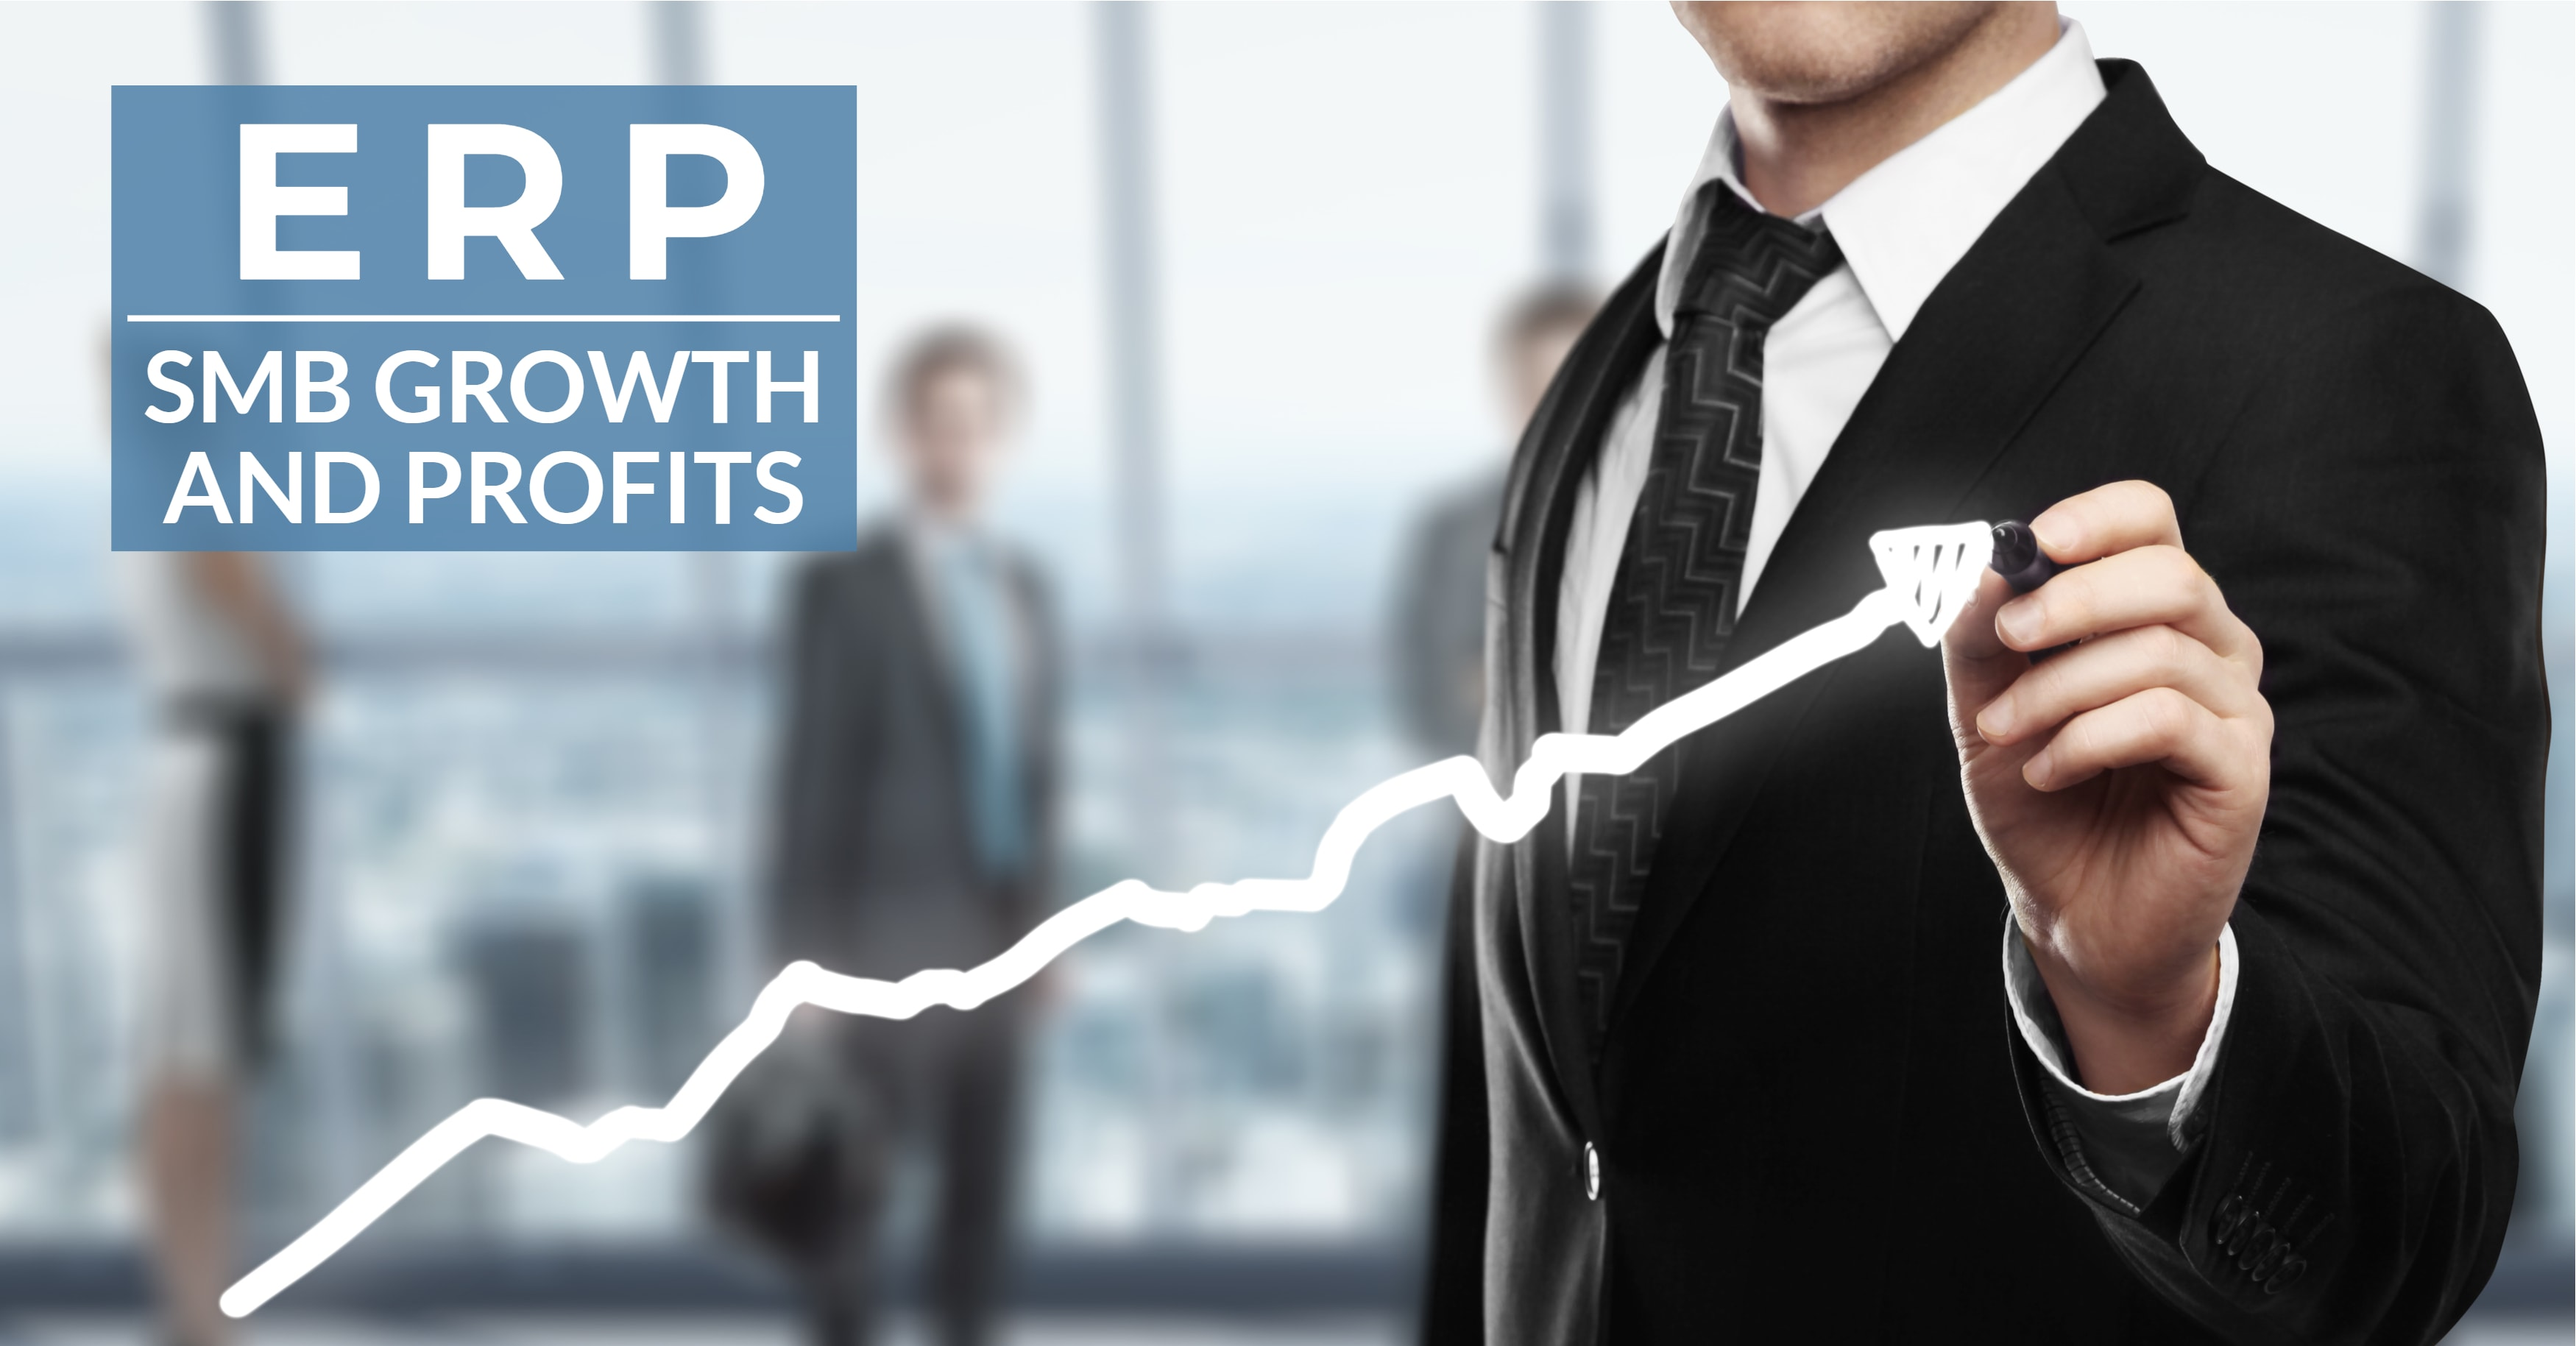 How ERP Drives Growth and Profits for SMBs